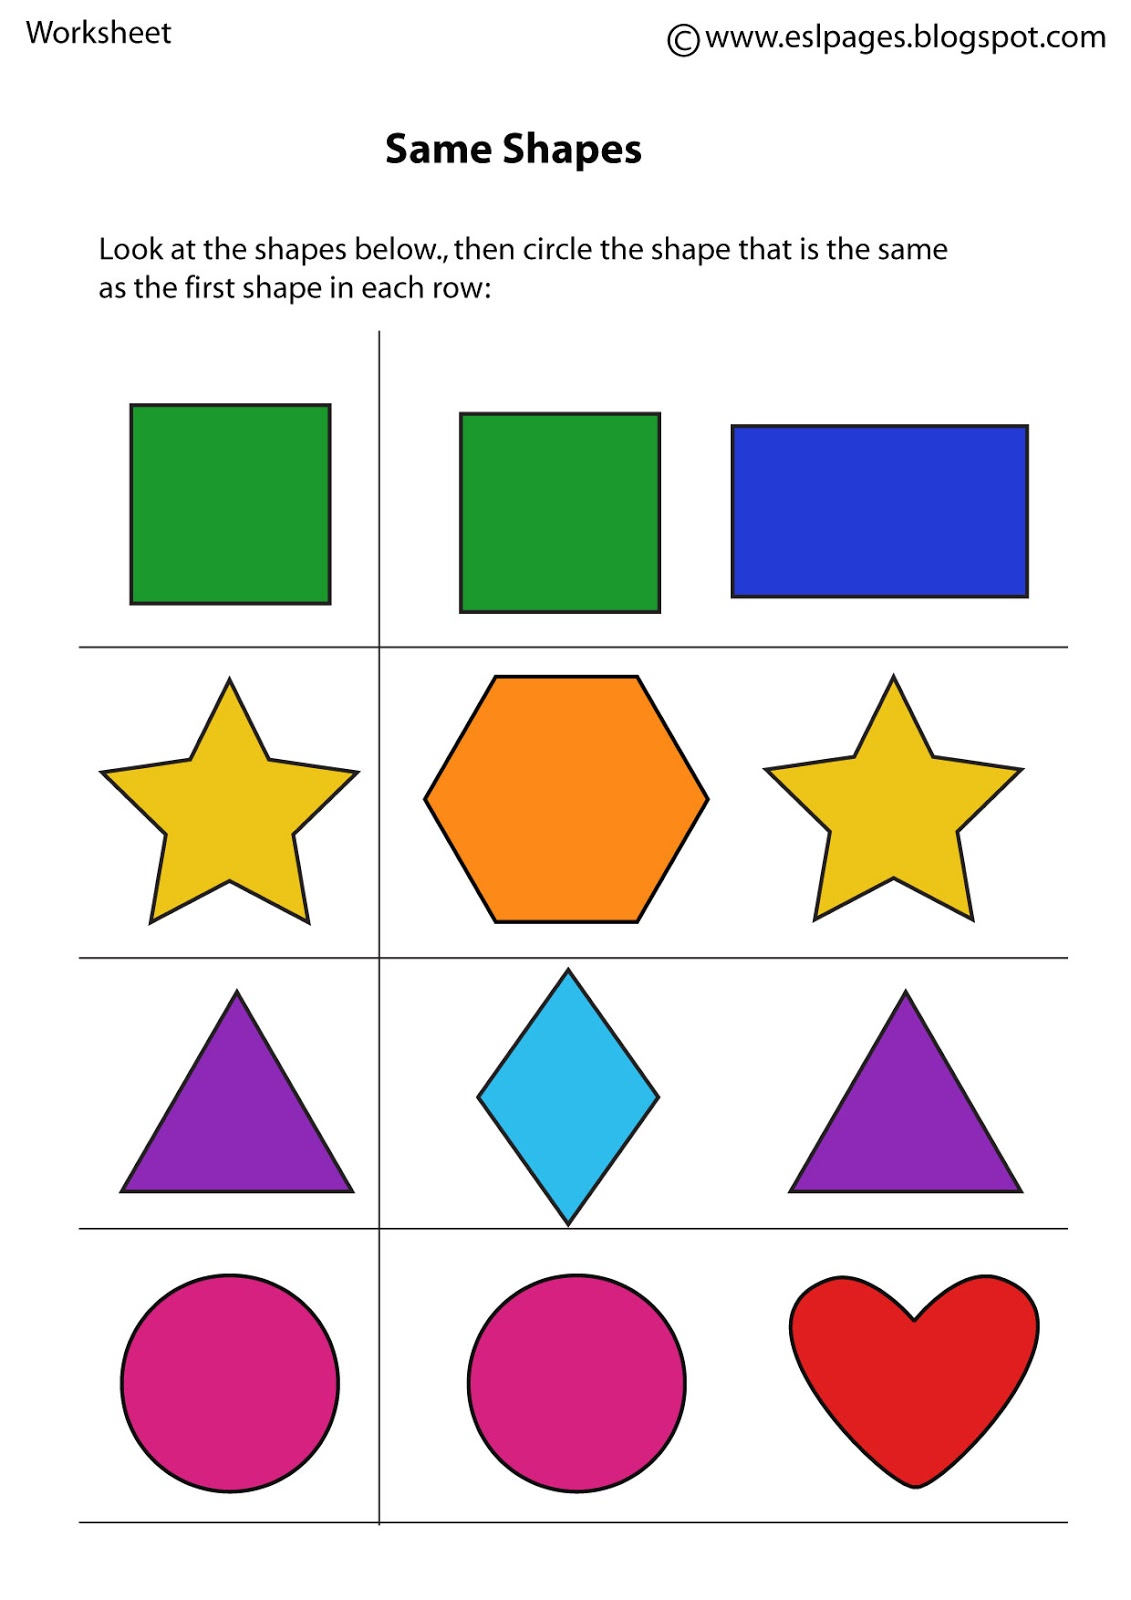 Same And Different Worksheets For Preschoolers Worksheets For All